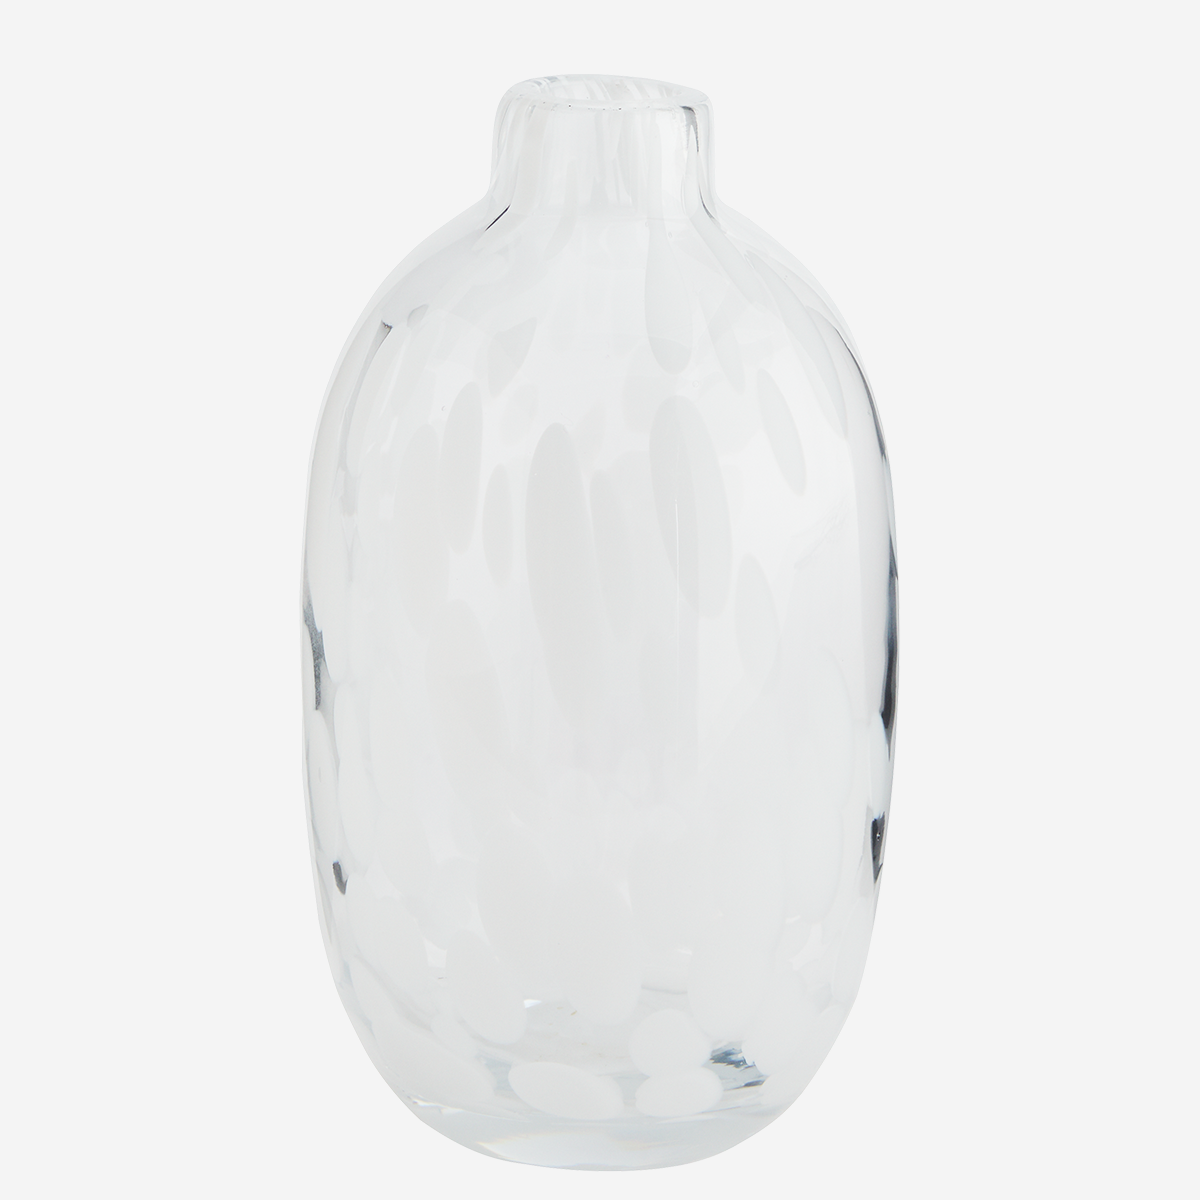 Dotted glass vase